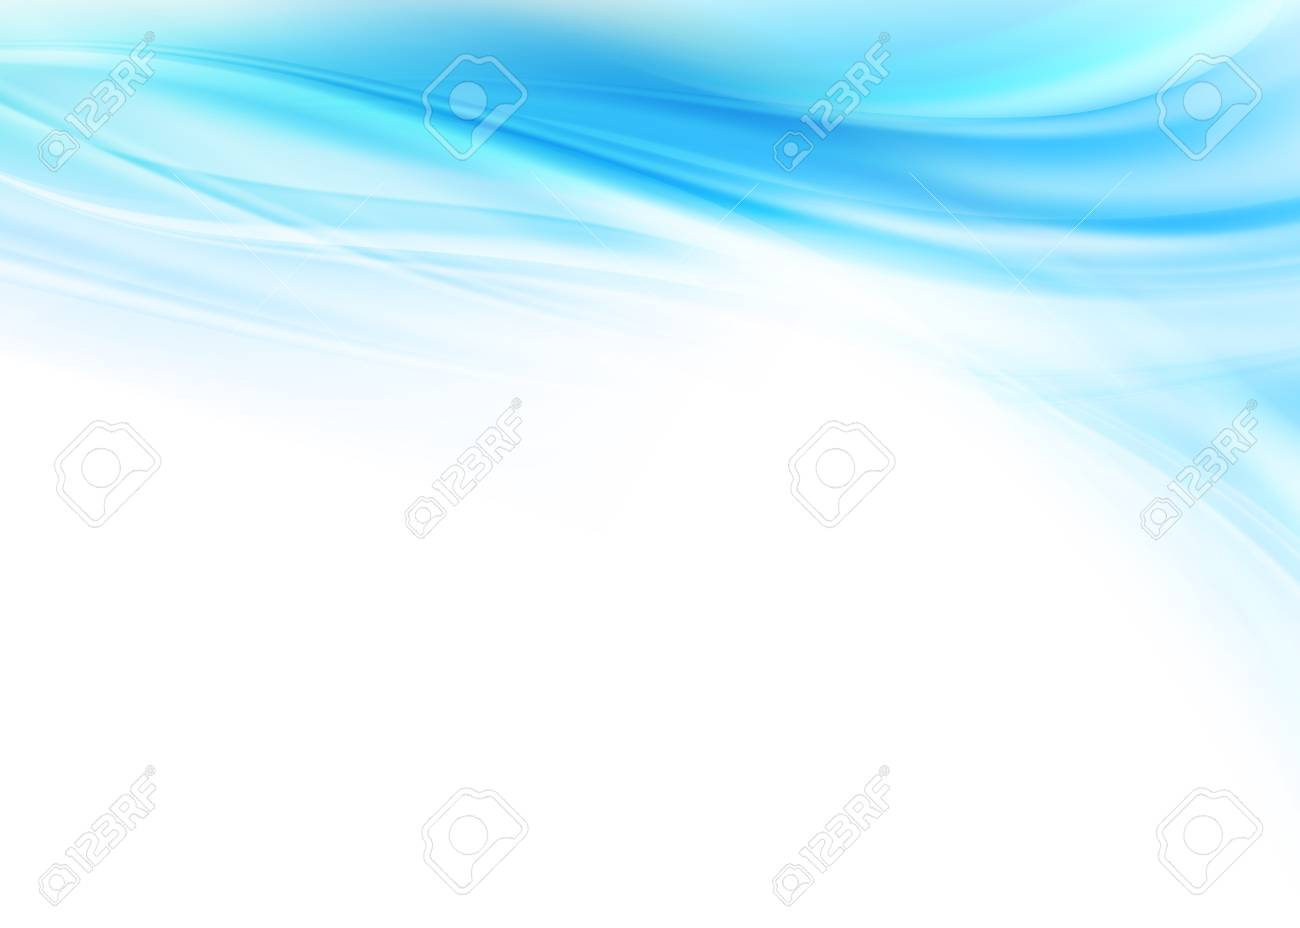 Blue Abstract Background - 56642523